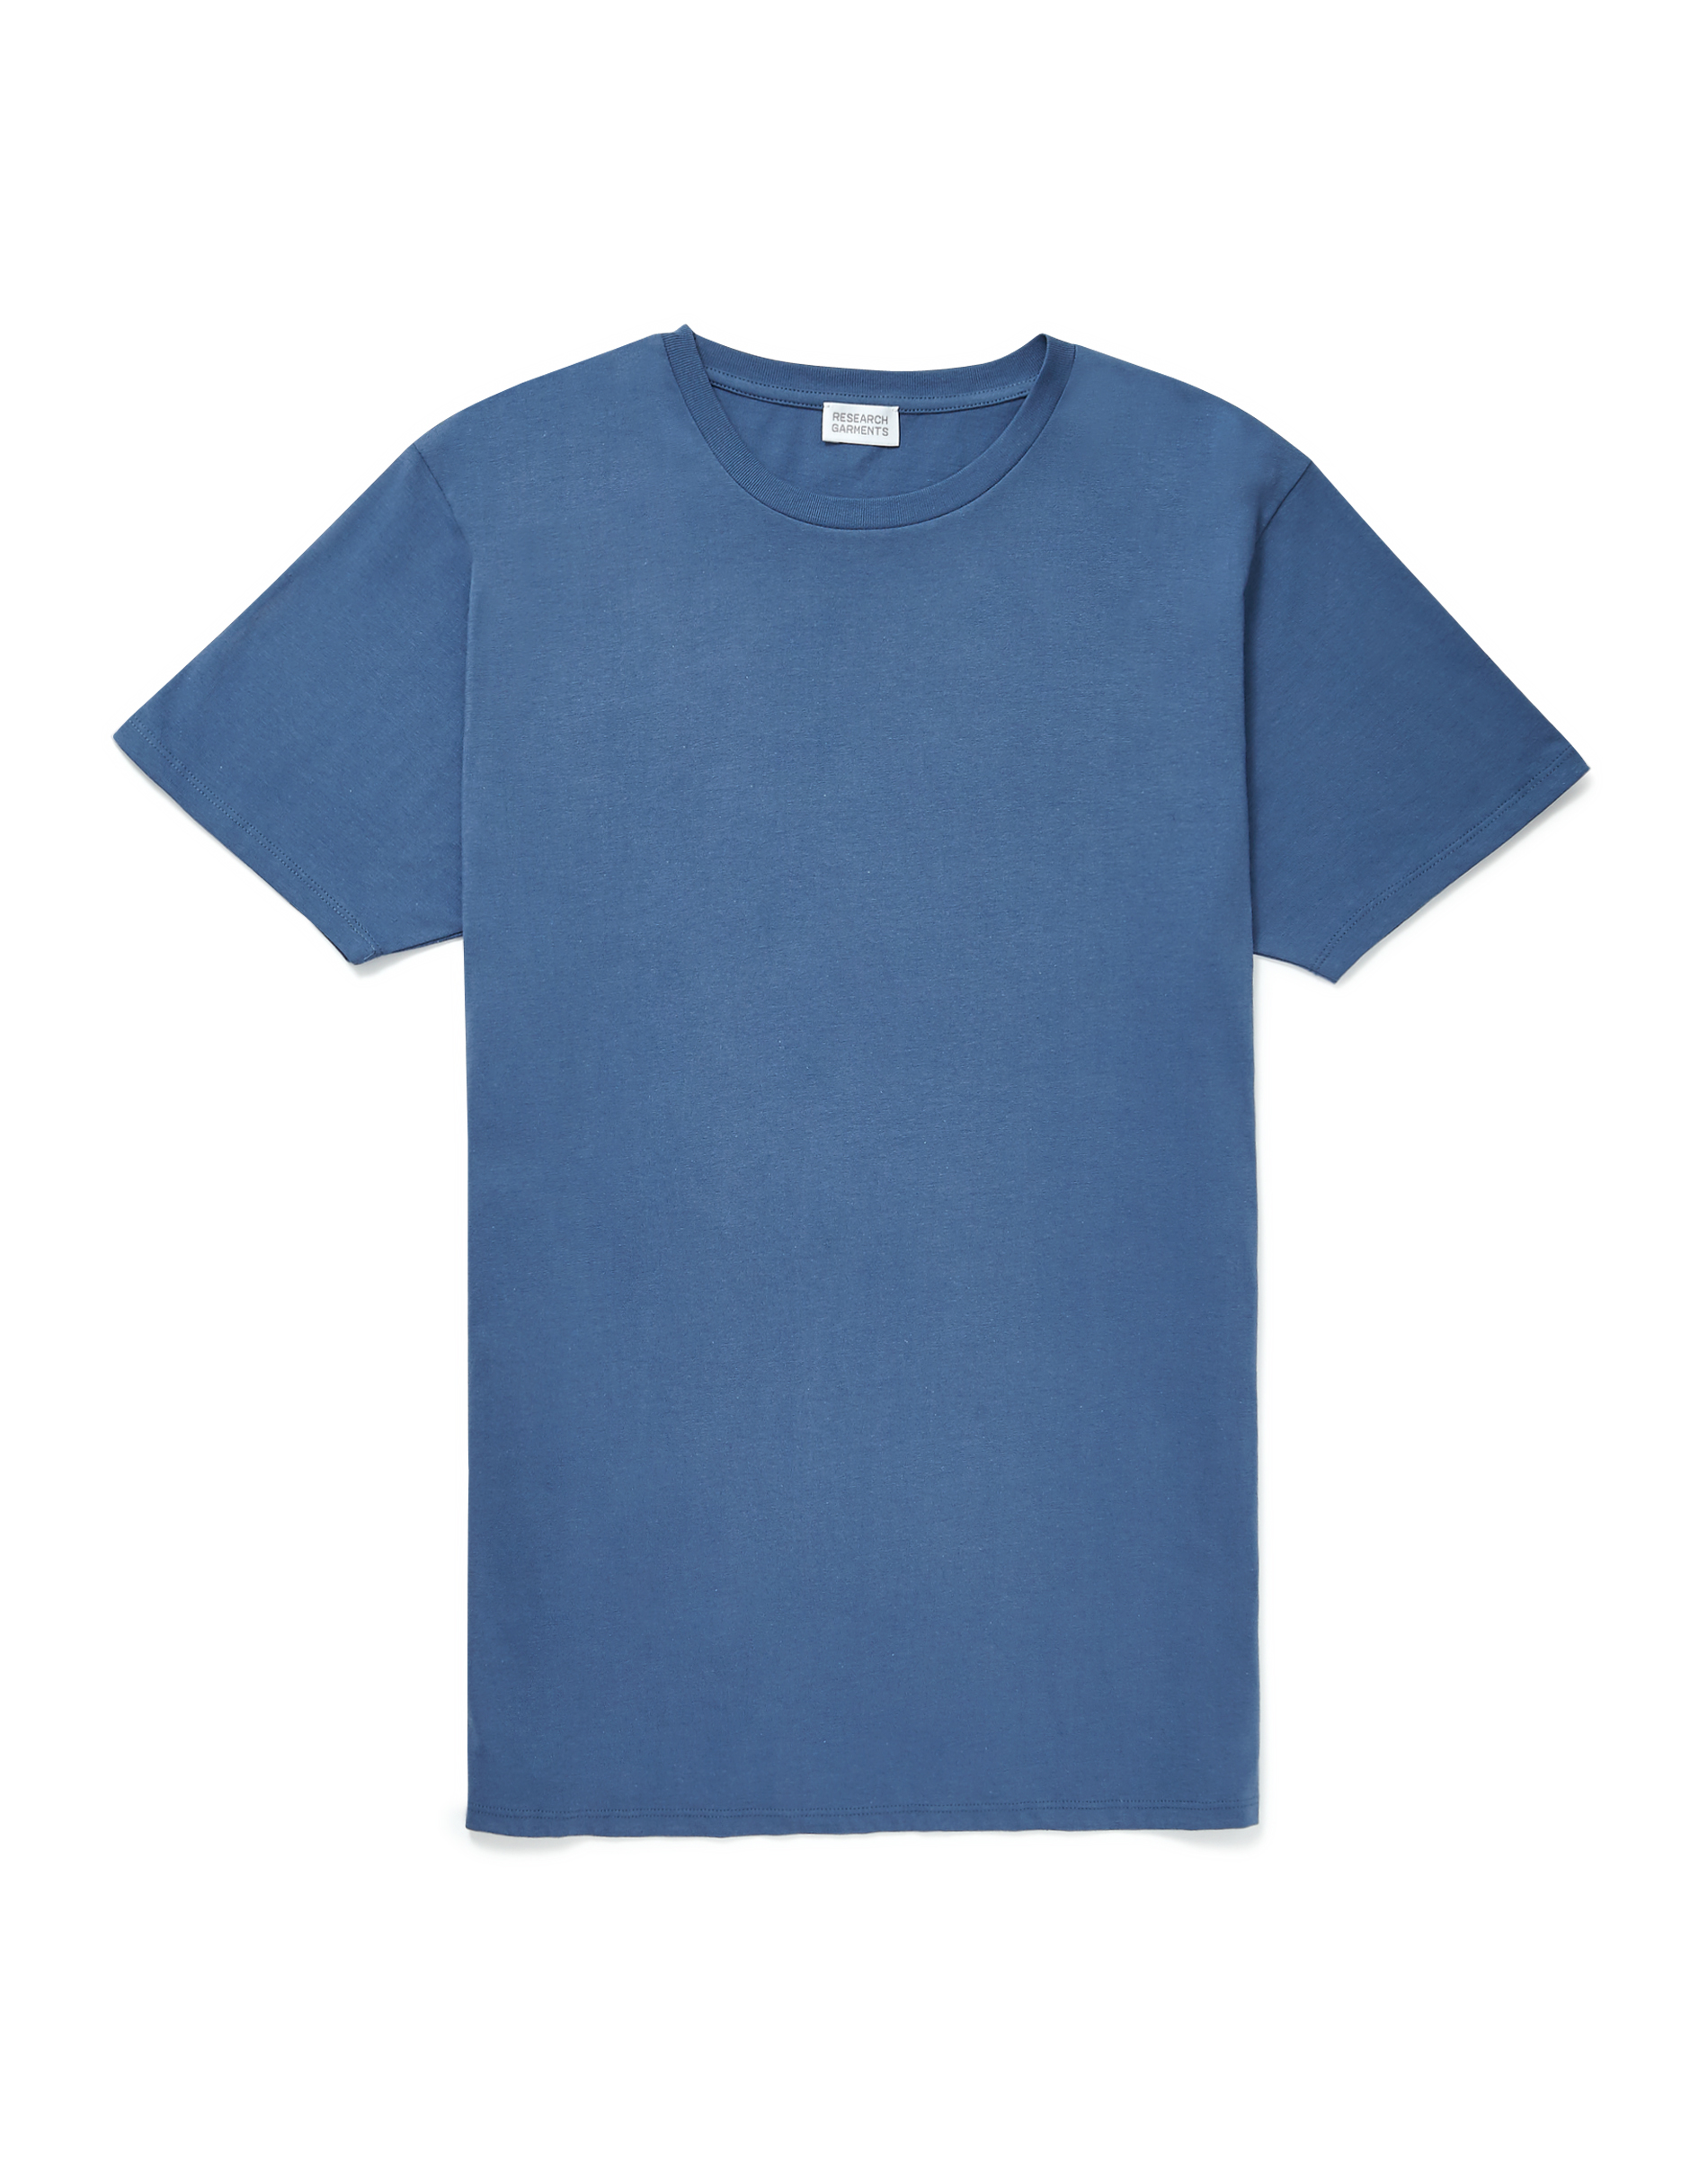 Research Garments Denim Blue The Perfect Blue Tee